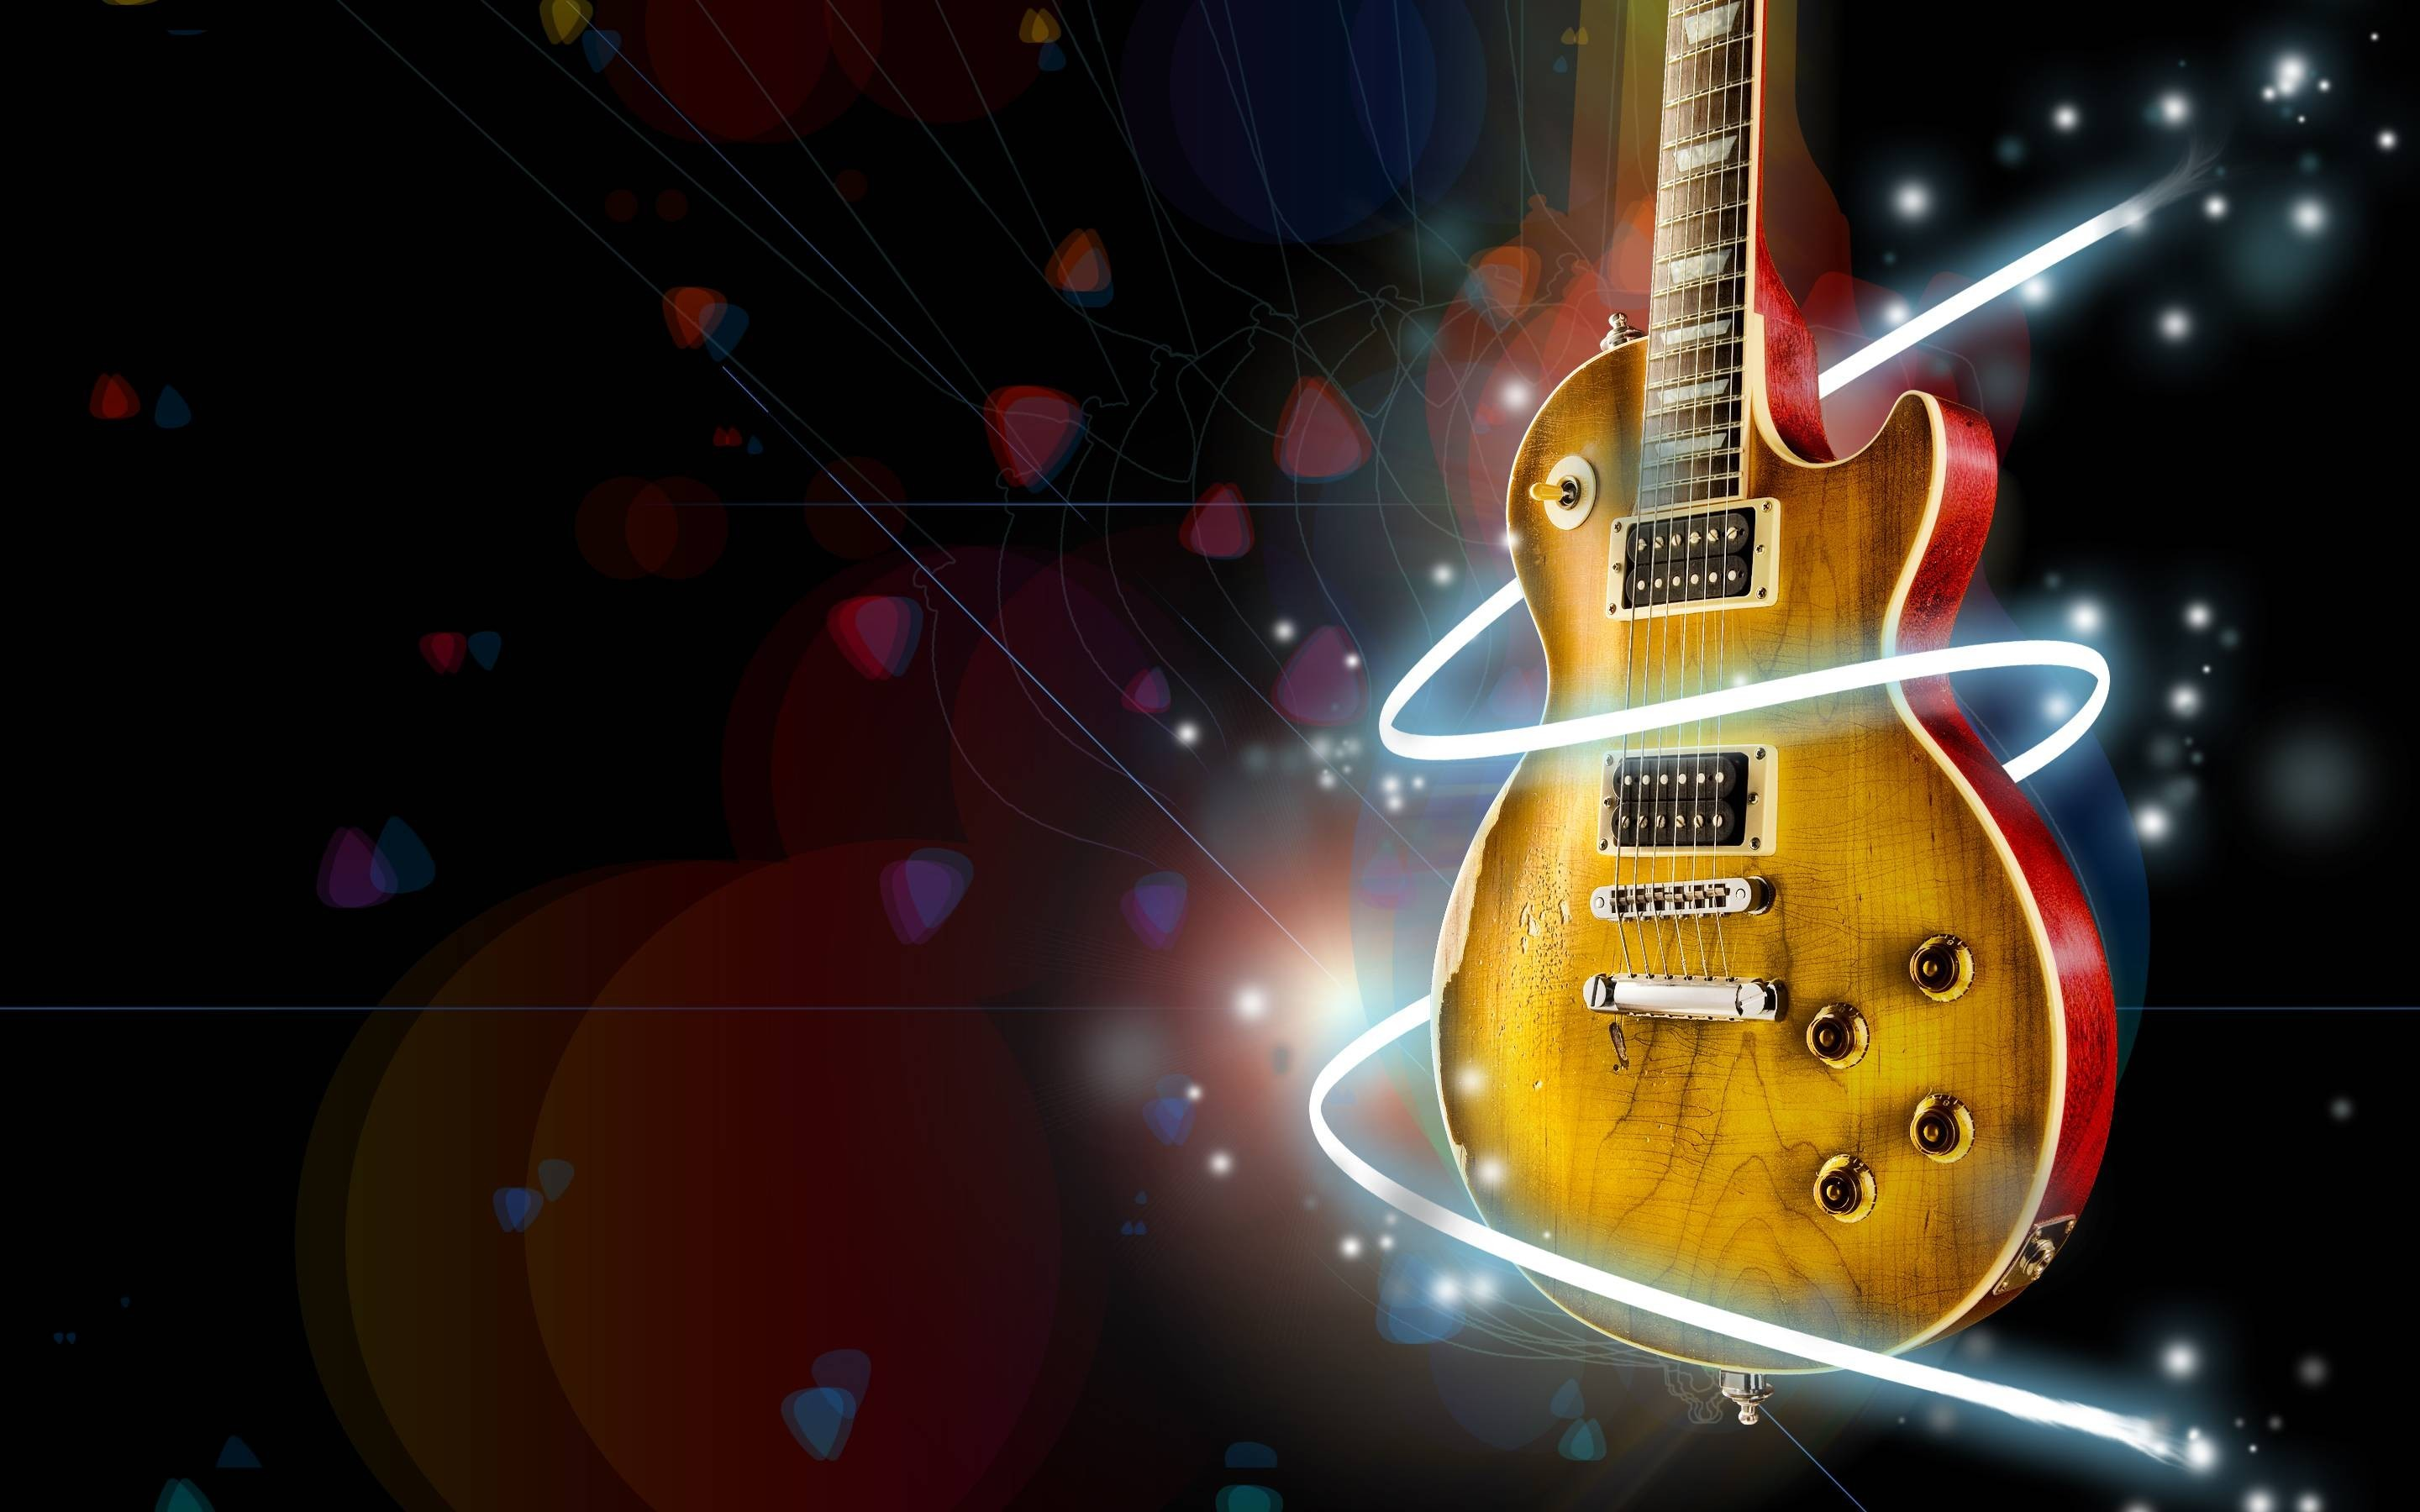 Res: 2880x1800, hd guitar wallpapers high resolution pictures hd desktop wallpapers amazing  images cool smart phone background photos